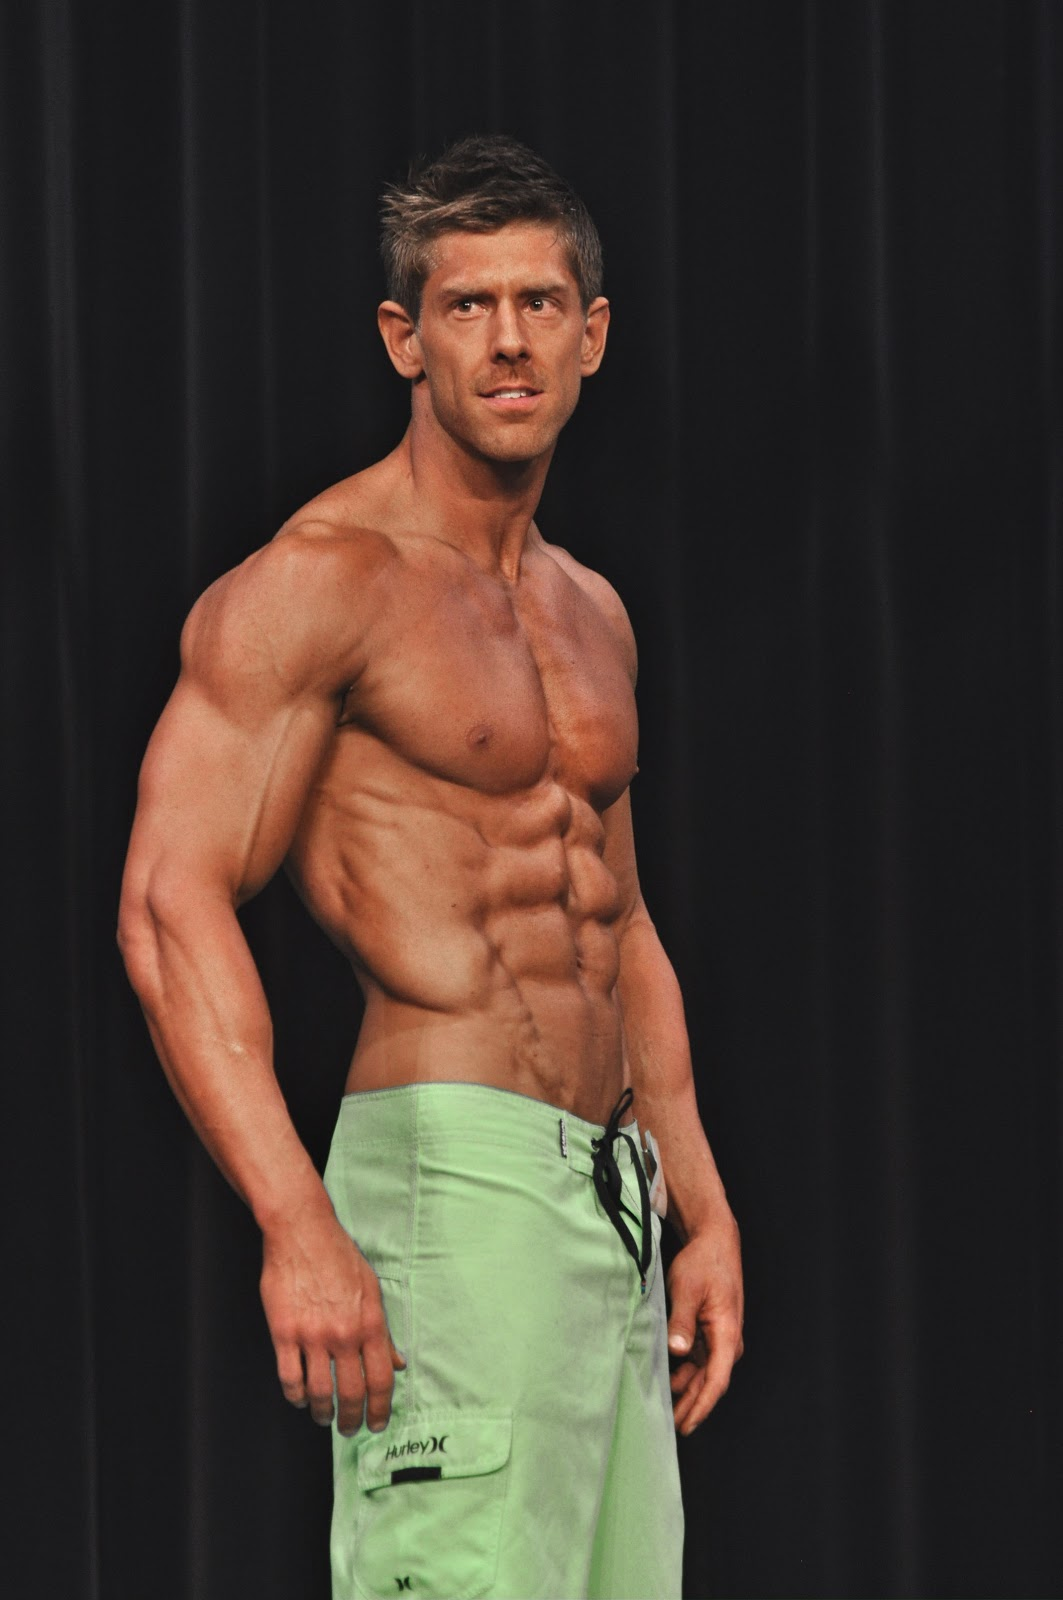 Men's Physique Online - Motivation And Information